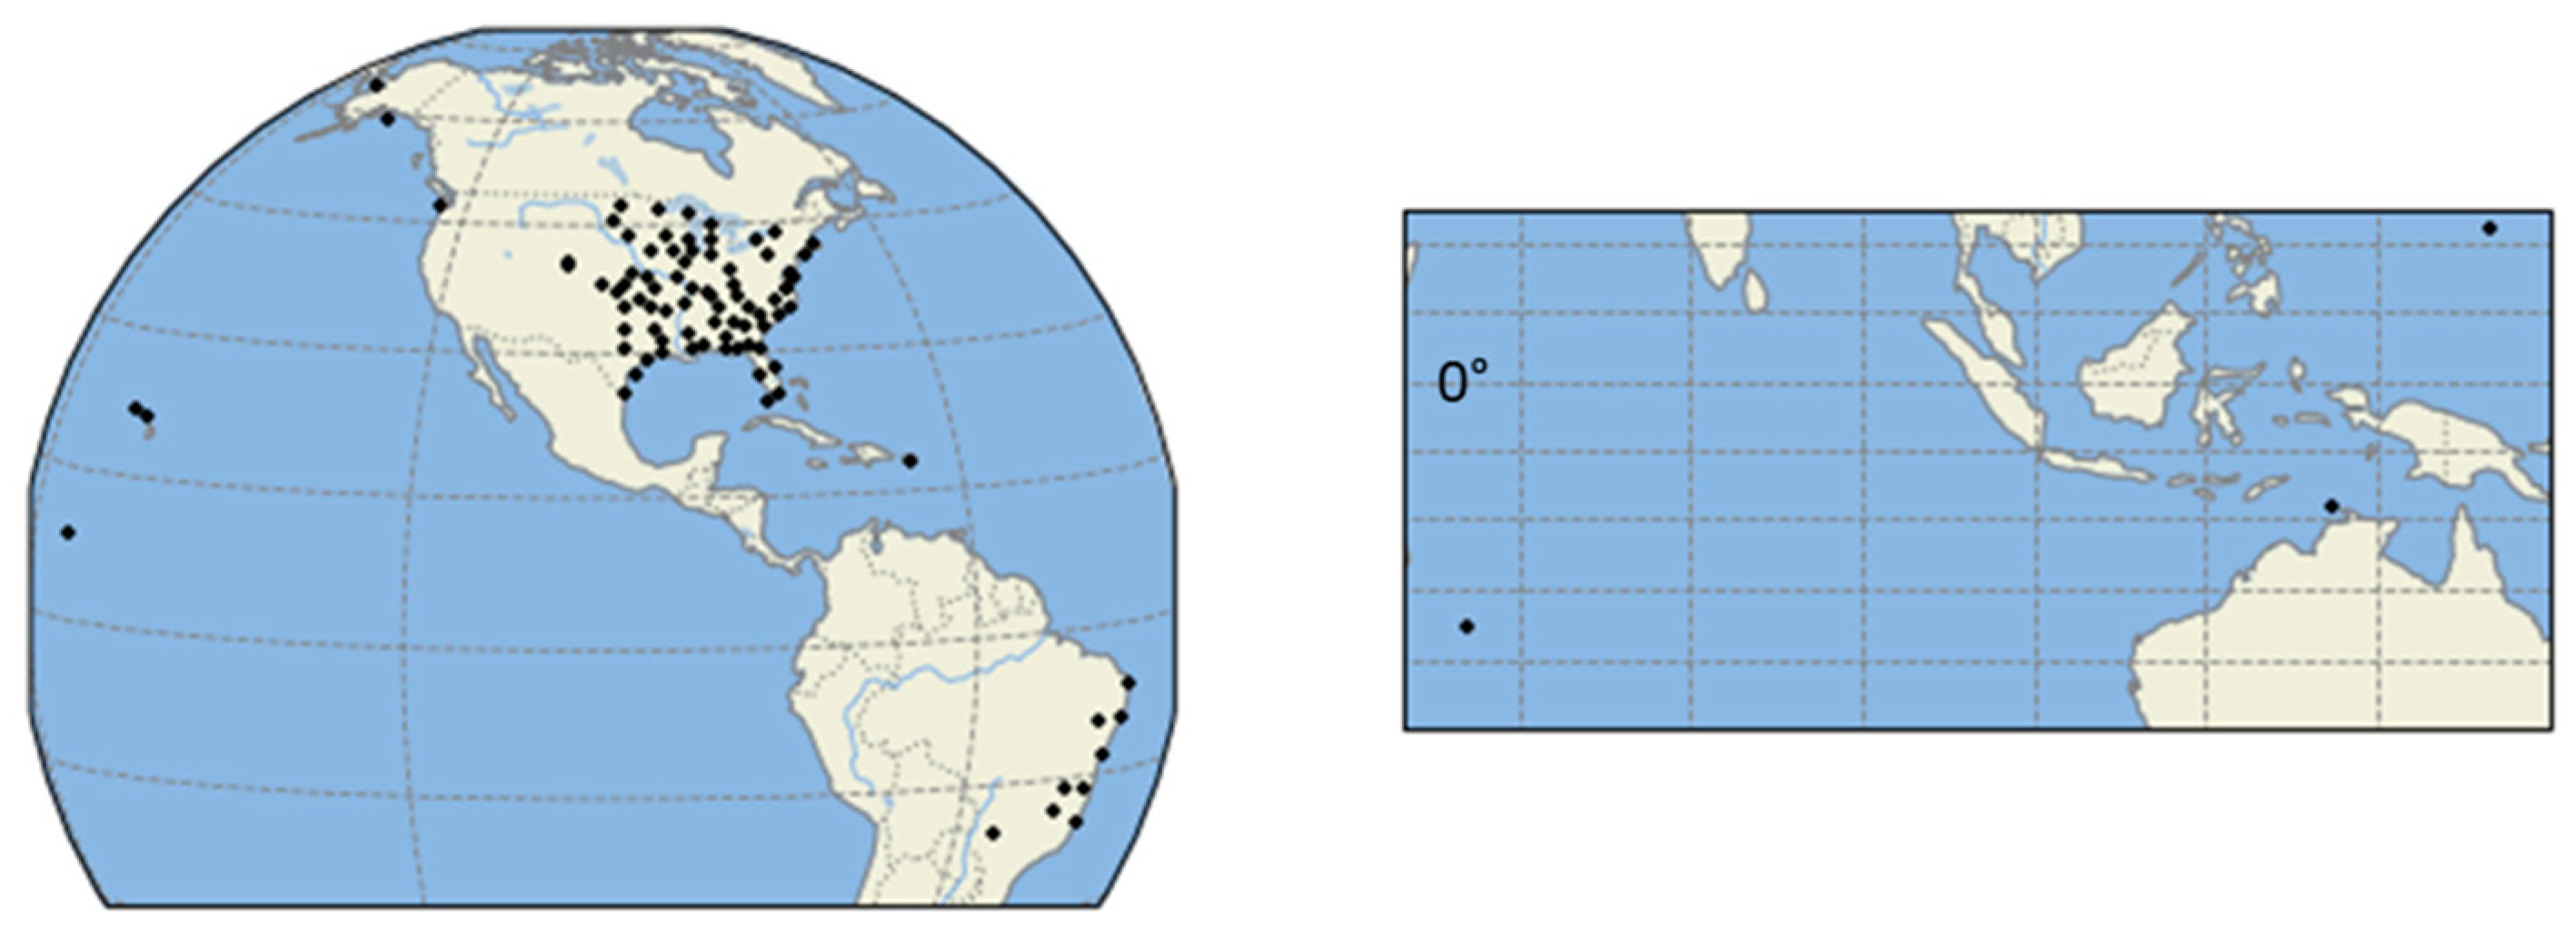 Ground Radar Sites for the GPM Validation Network